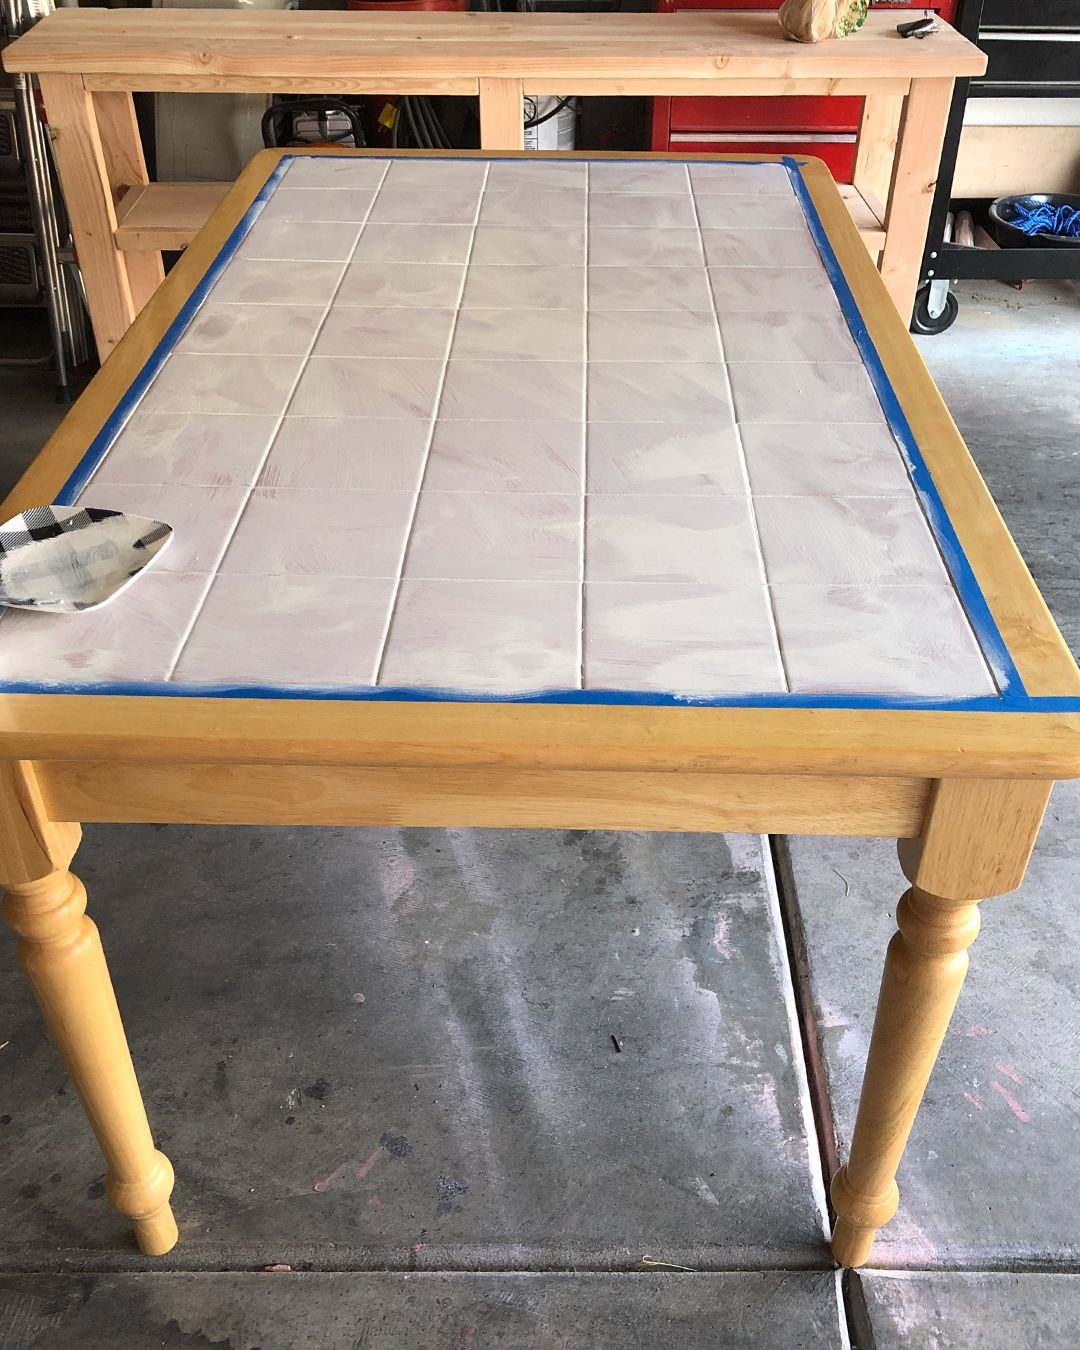 How to Paint a Dated Tile Table   Tile tables, Tile table, Tile ...